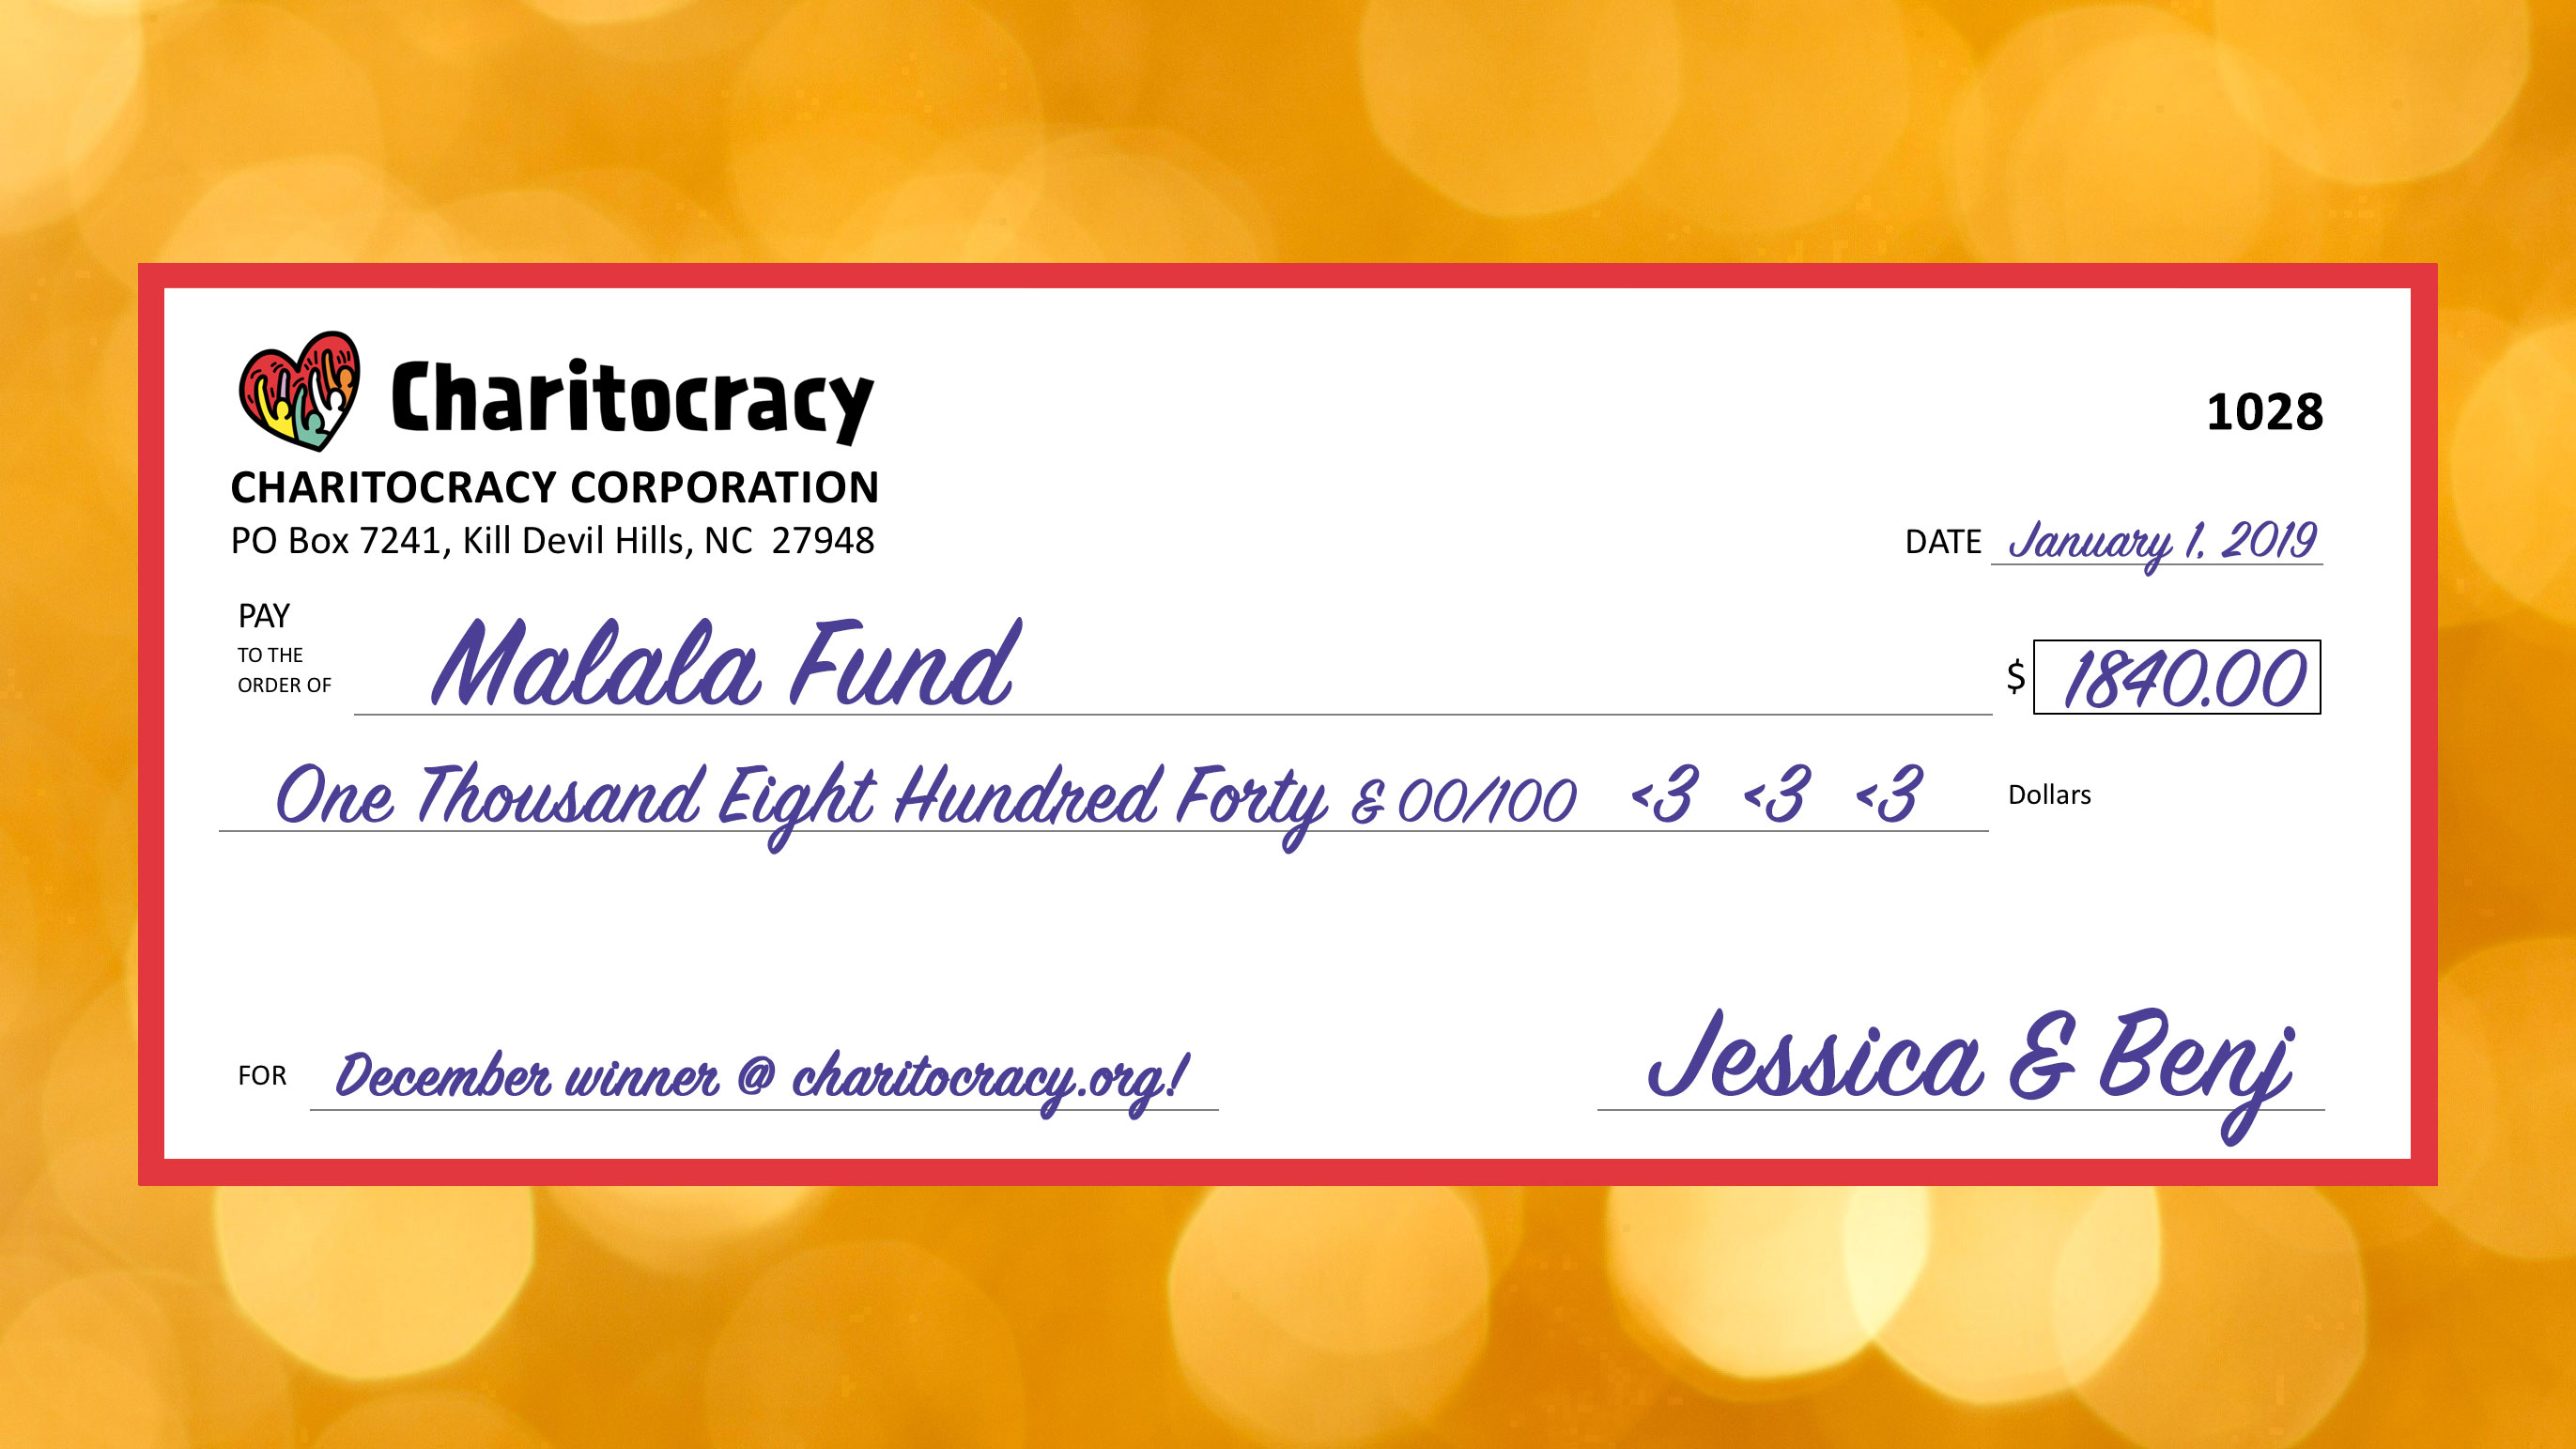 Charitocracy's 28th check: to Malala Fund for $1840